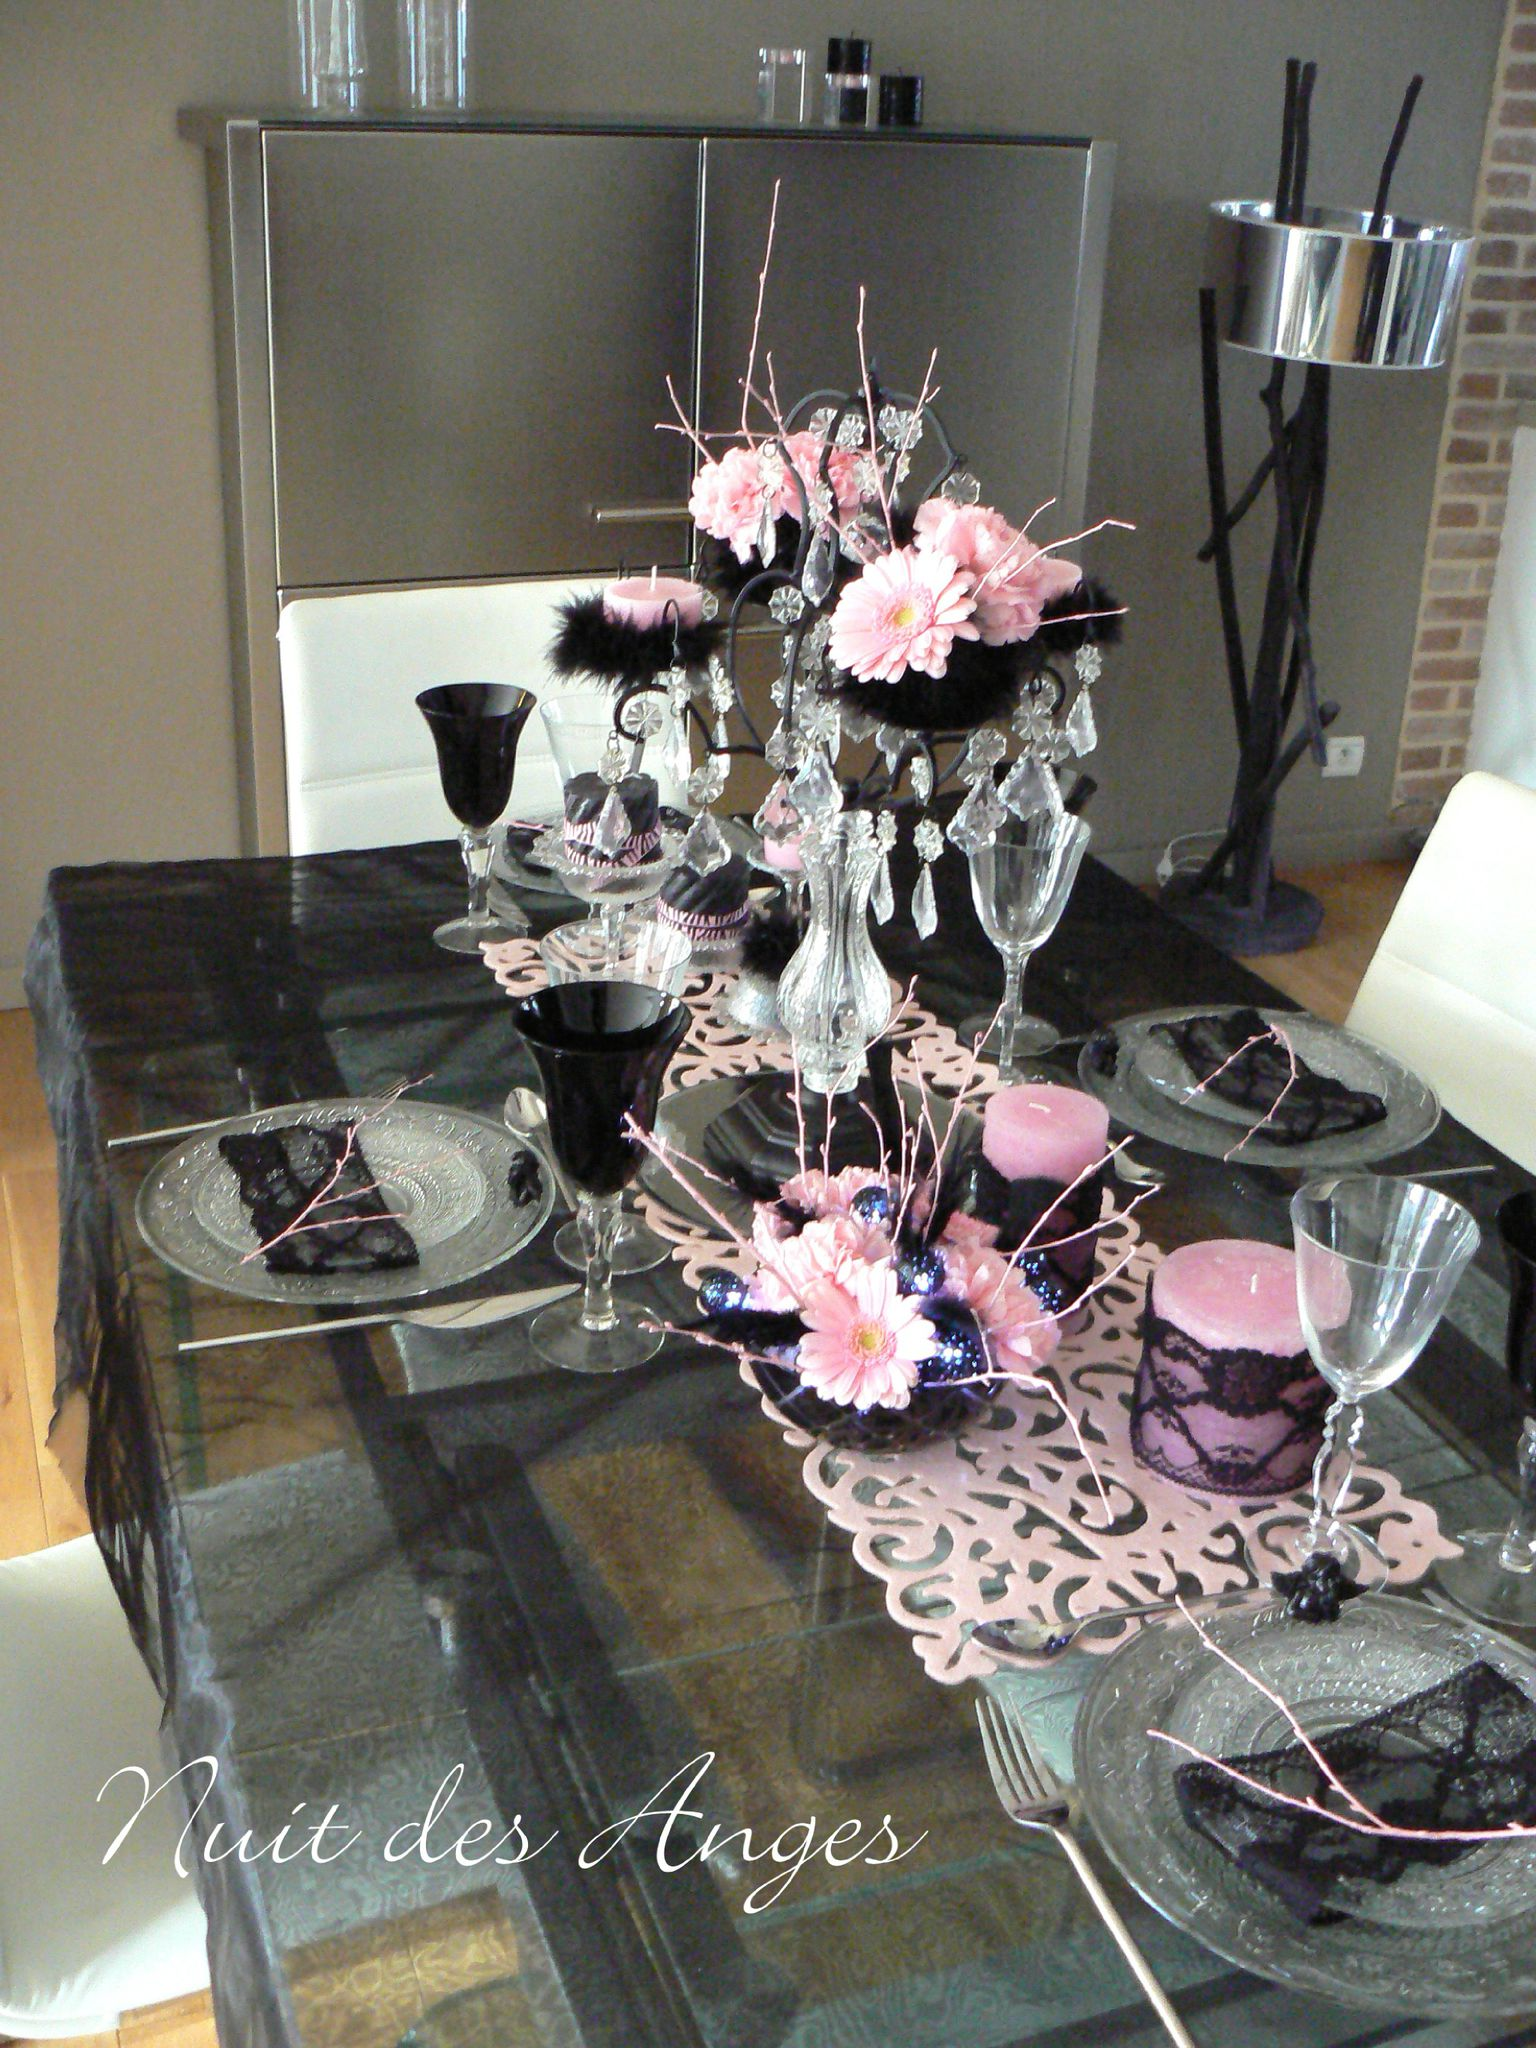 D coration de table noir et rose boudoir nuit des anges for Decoration de table